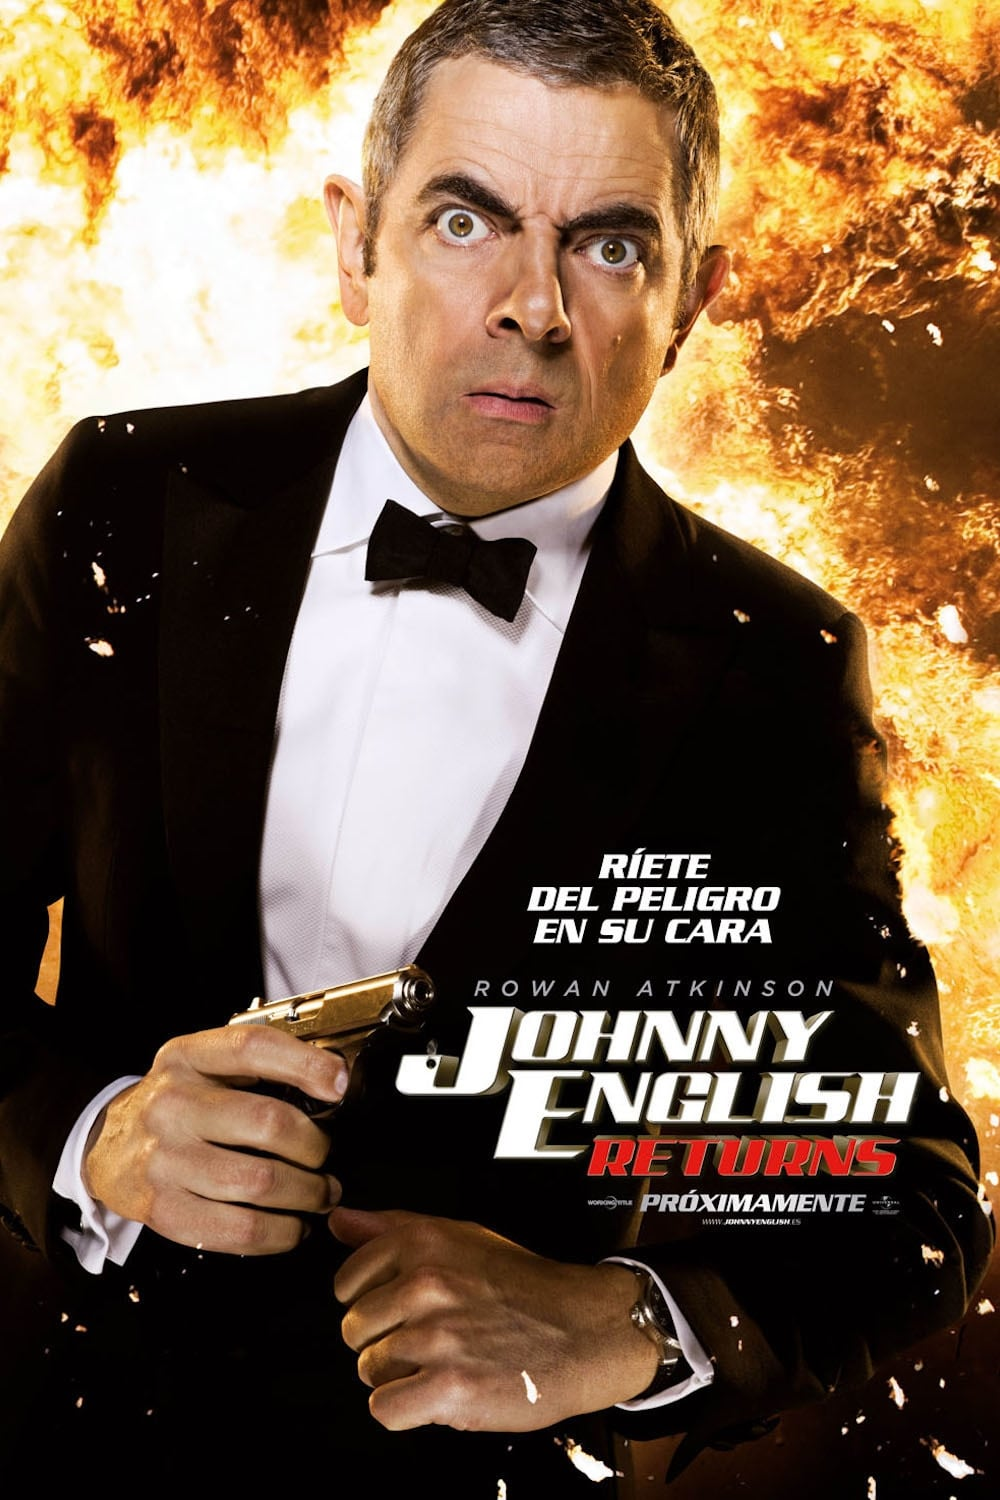 Imagen Johnny English returns